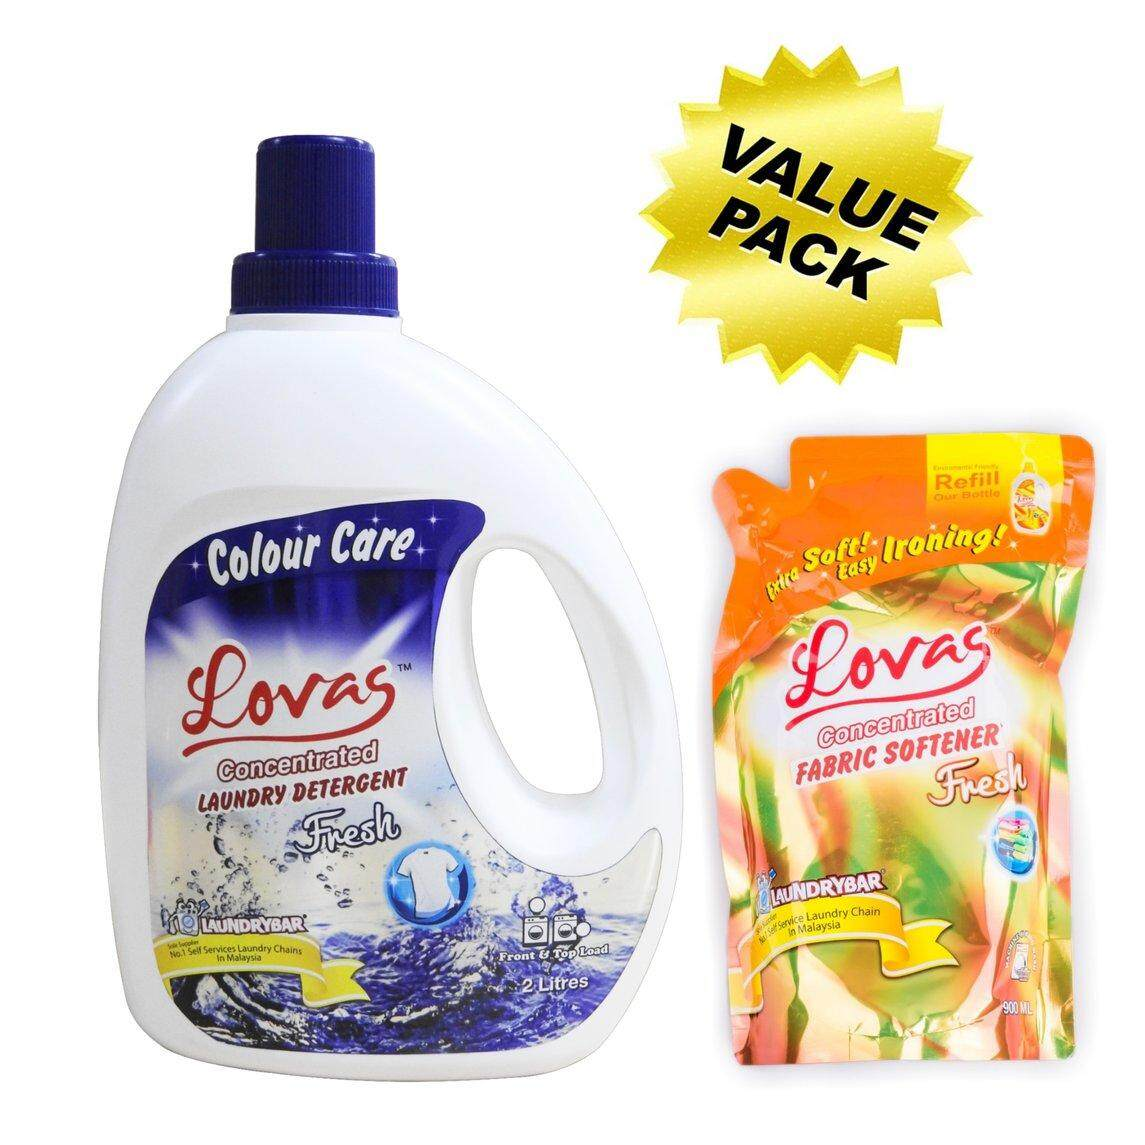 Value Pack - LOVAS Concentrated Laundry Detergent (2L) + LOVAS Concentrated Fabric Softener (900mL Refill Pack)